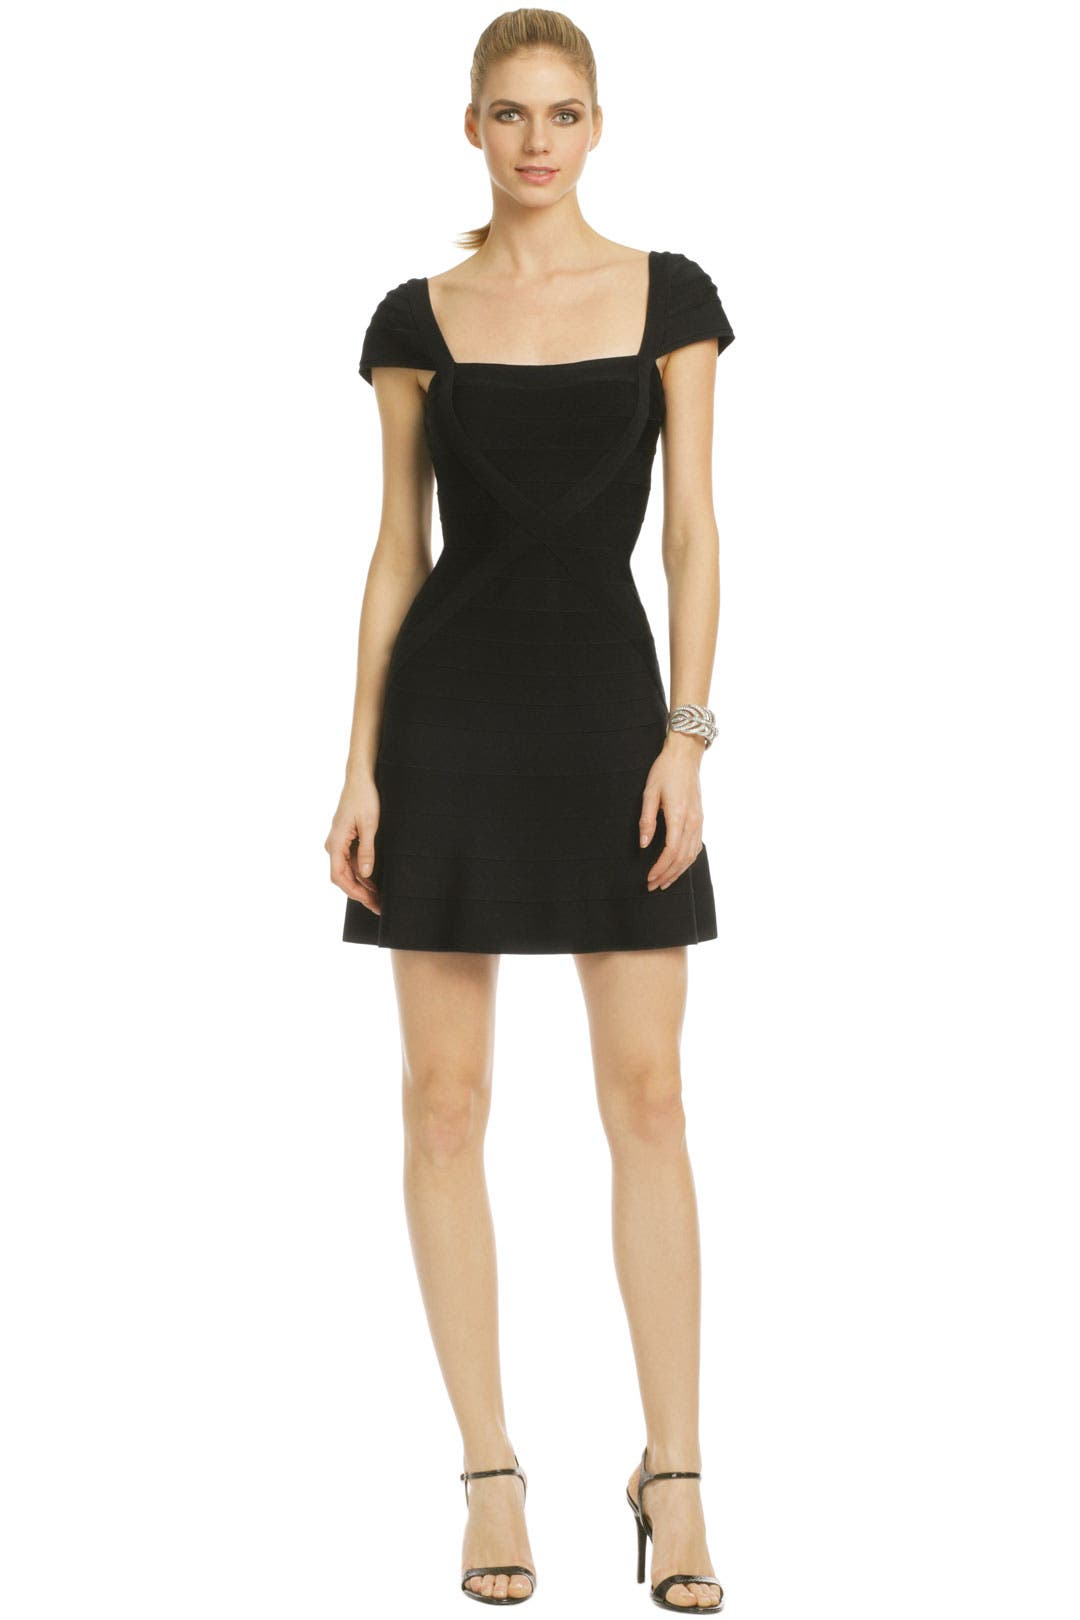 Noir Hot Commodity Dress by Hervé Léger